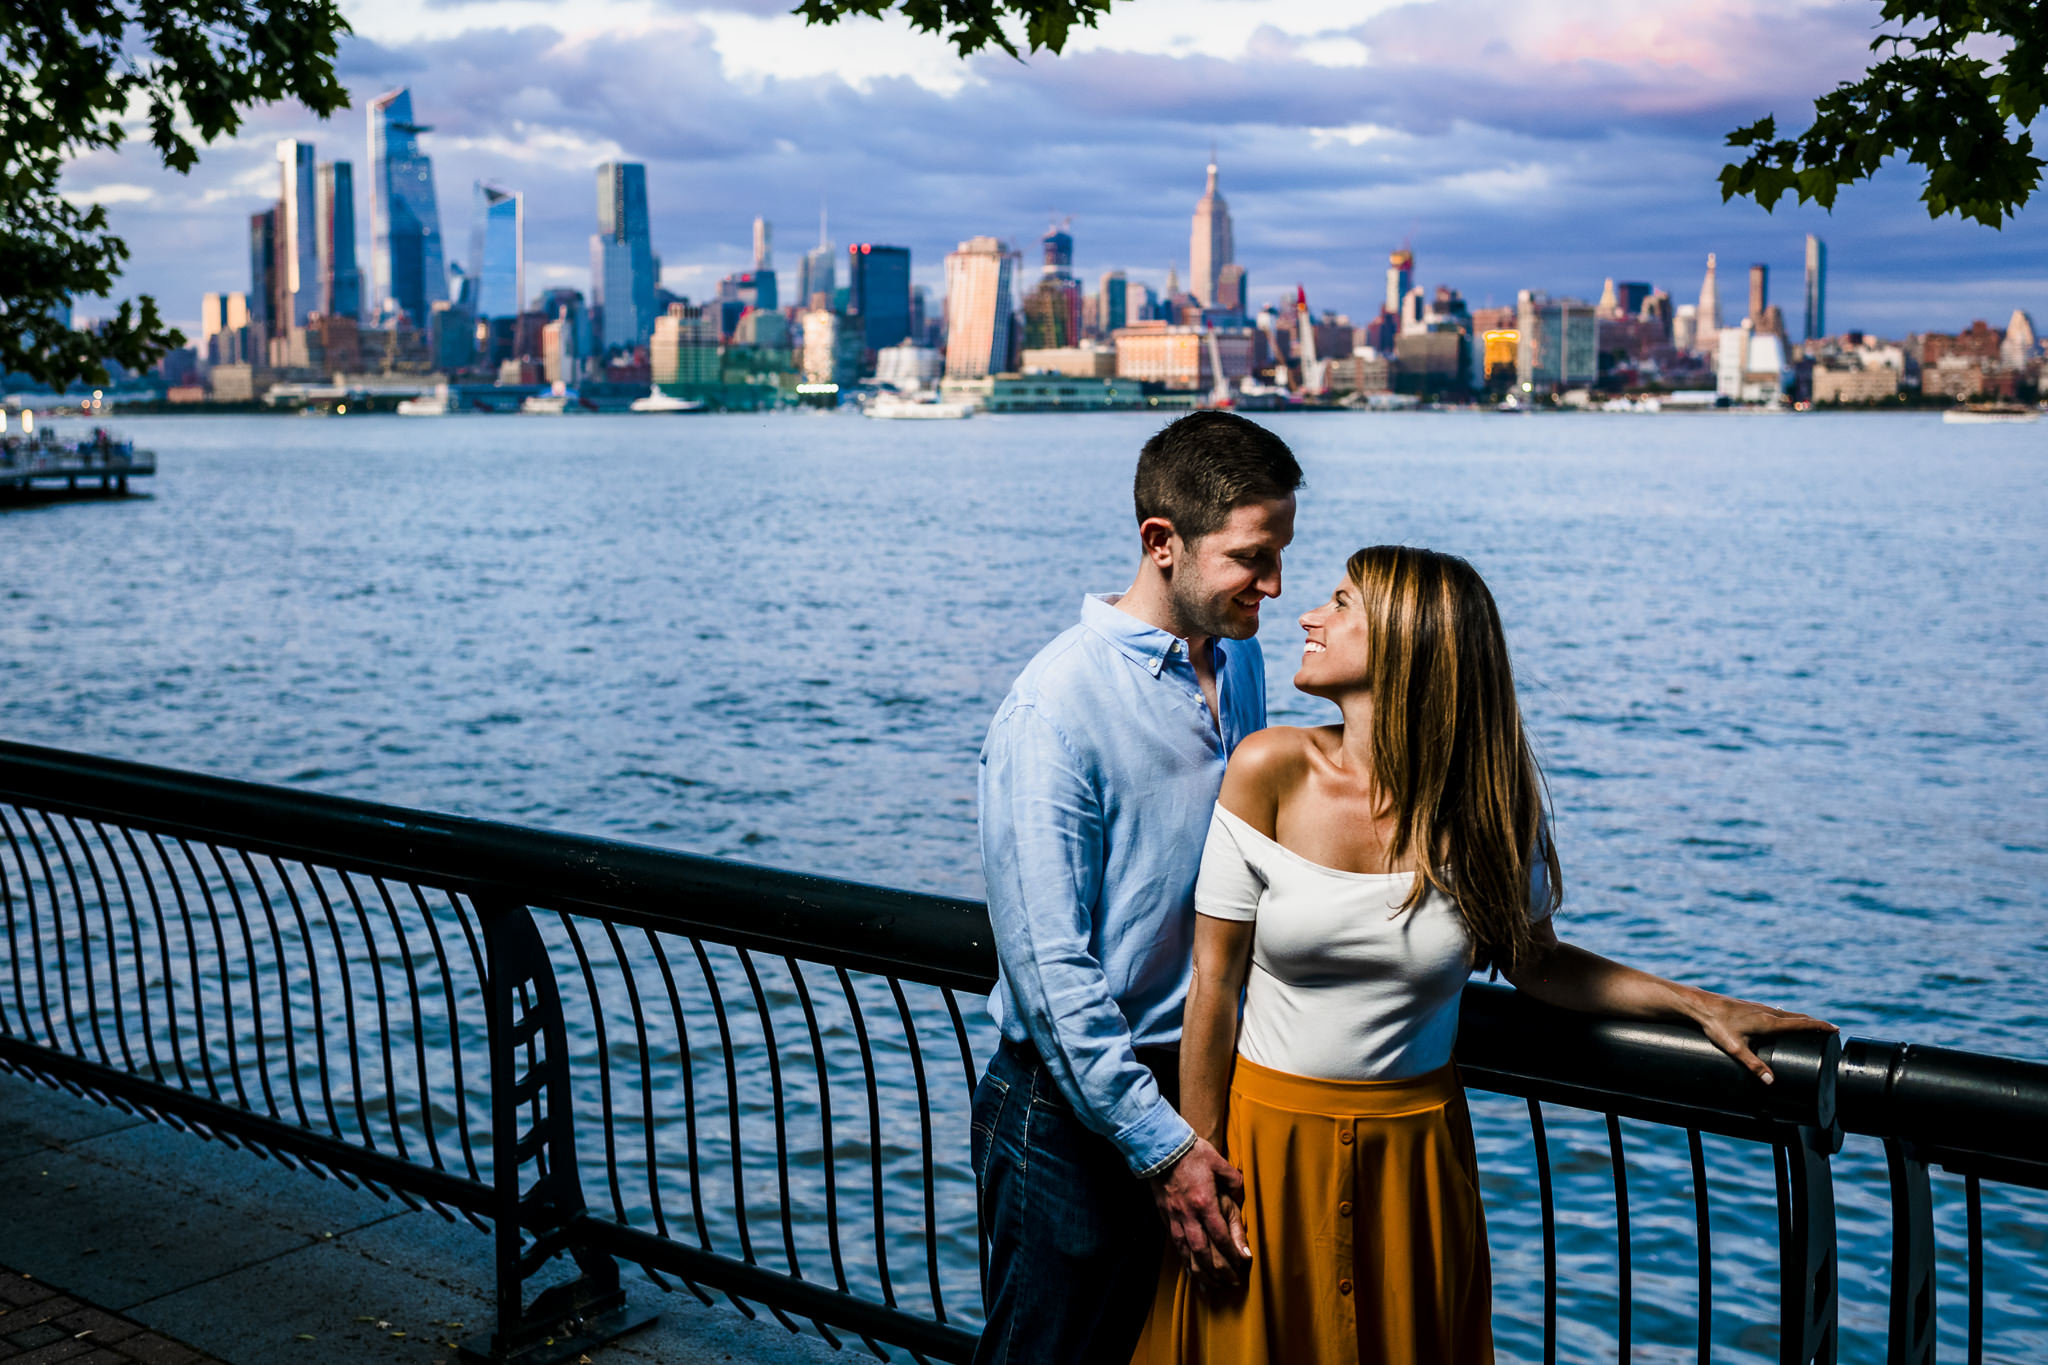 Flanagan-Pier-Hoboken-Engagement-Photos-NYC-Photographer-18.JPG